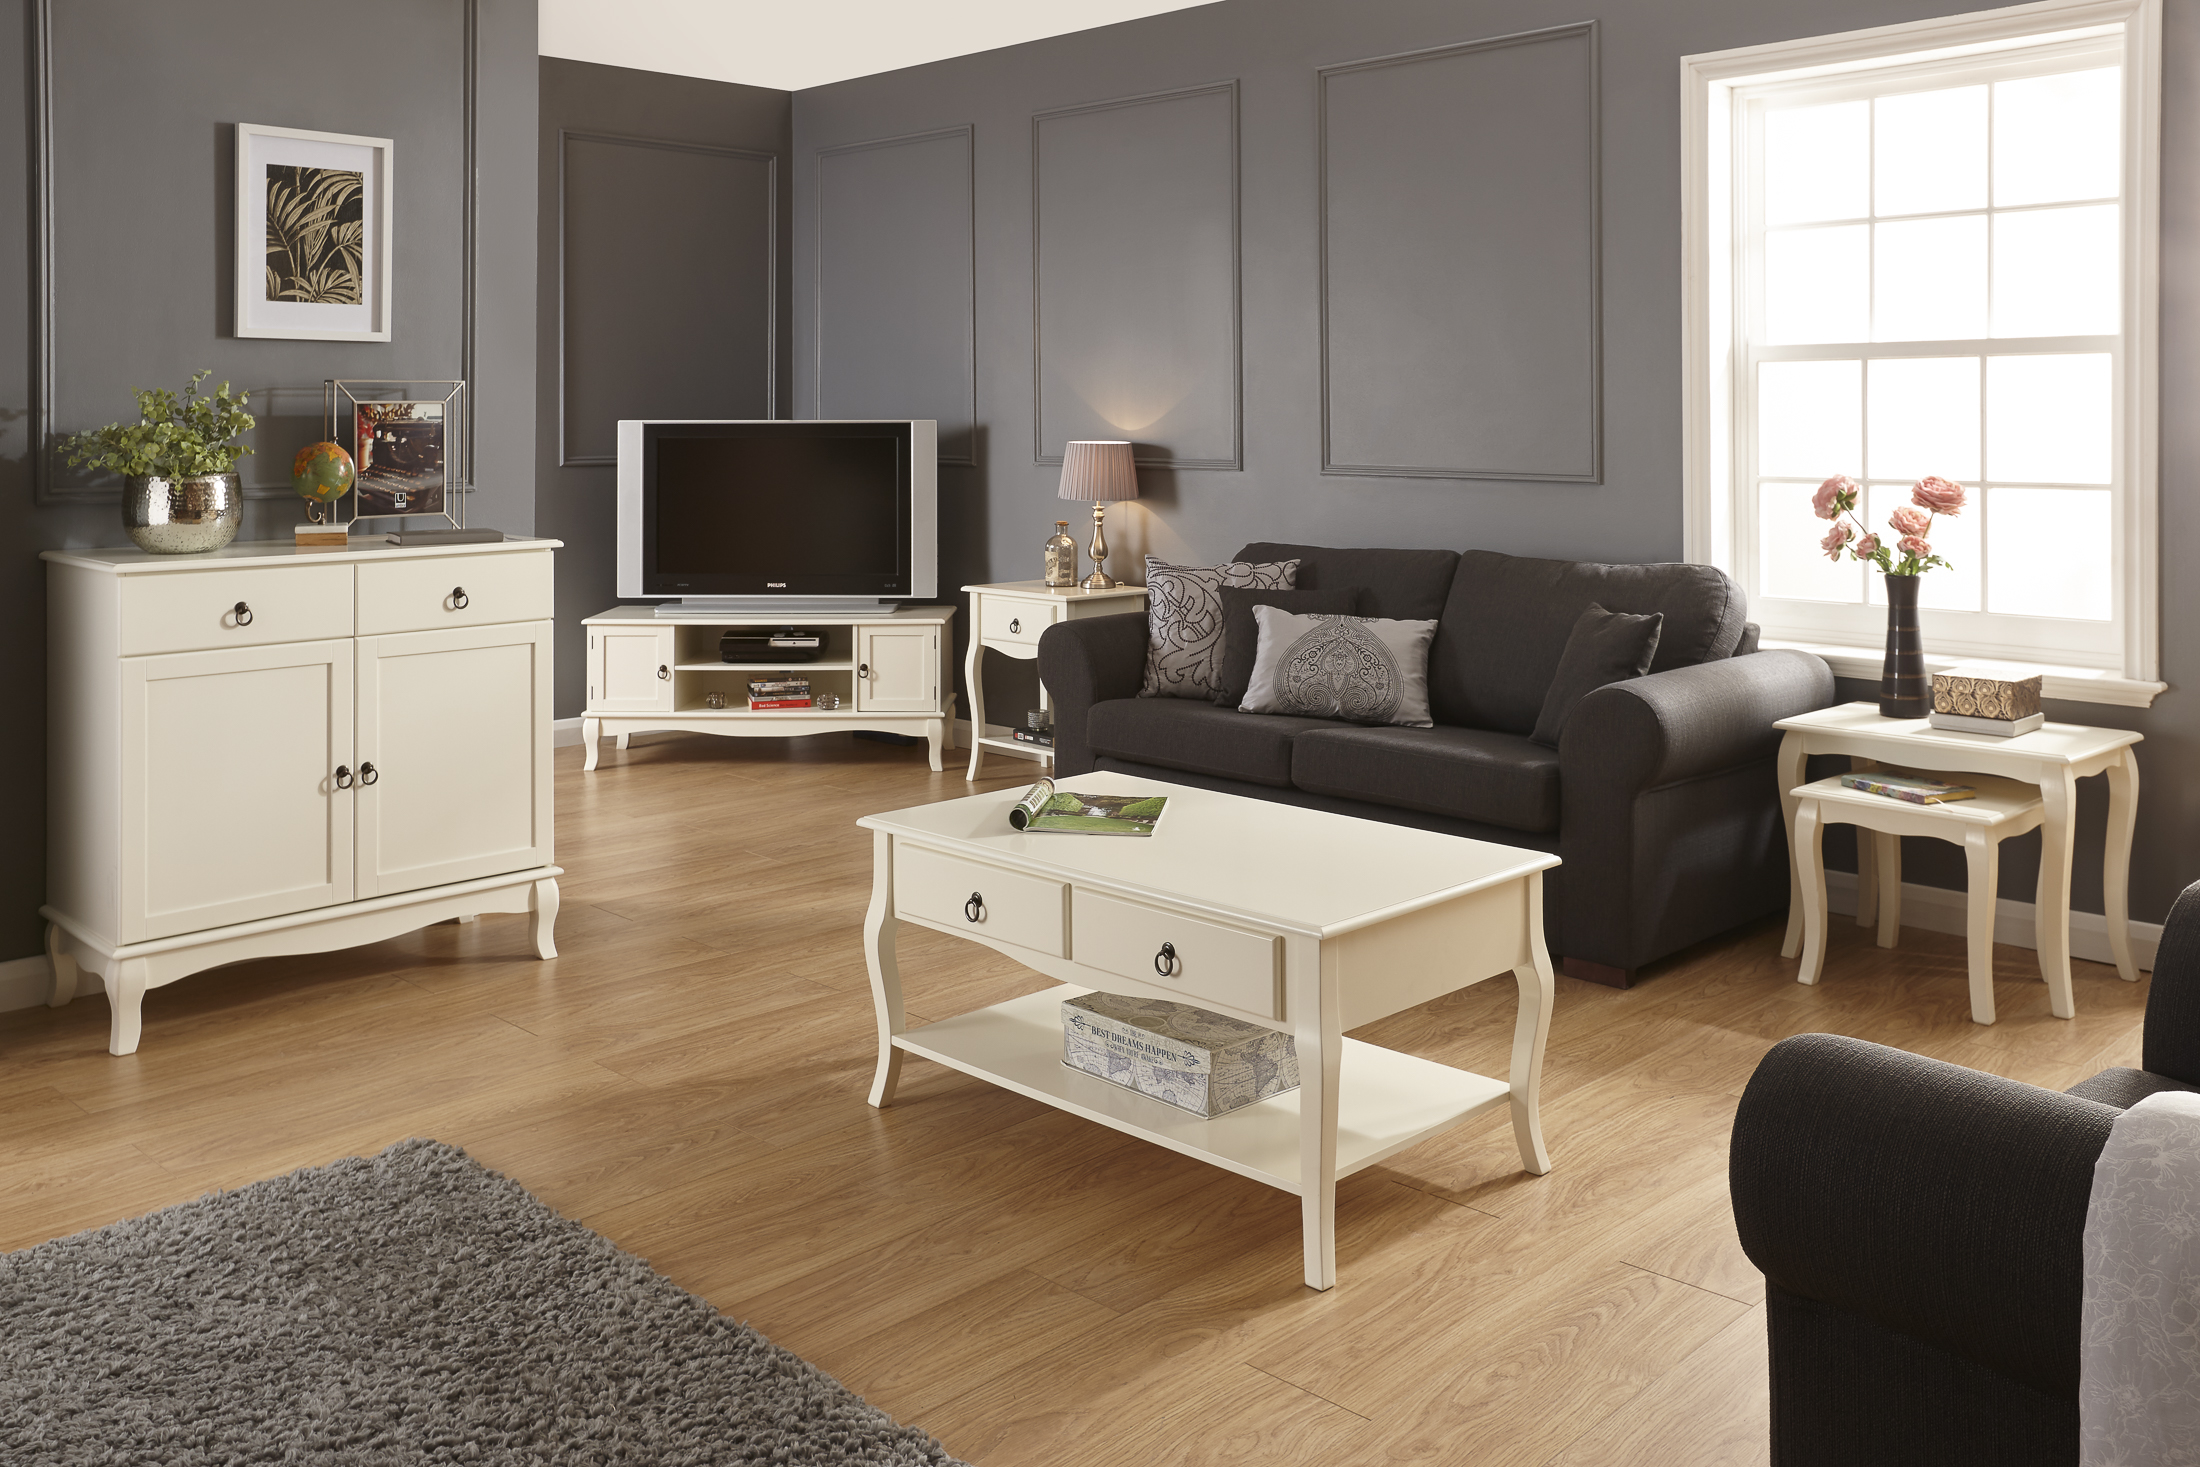 New Ivory Painted Living Room Furniture